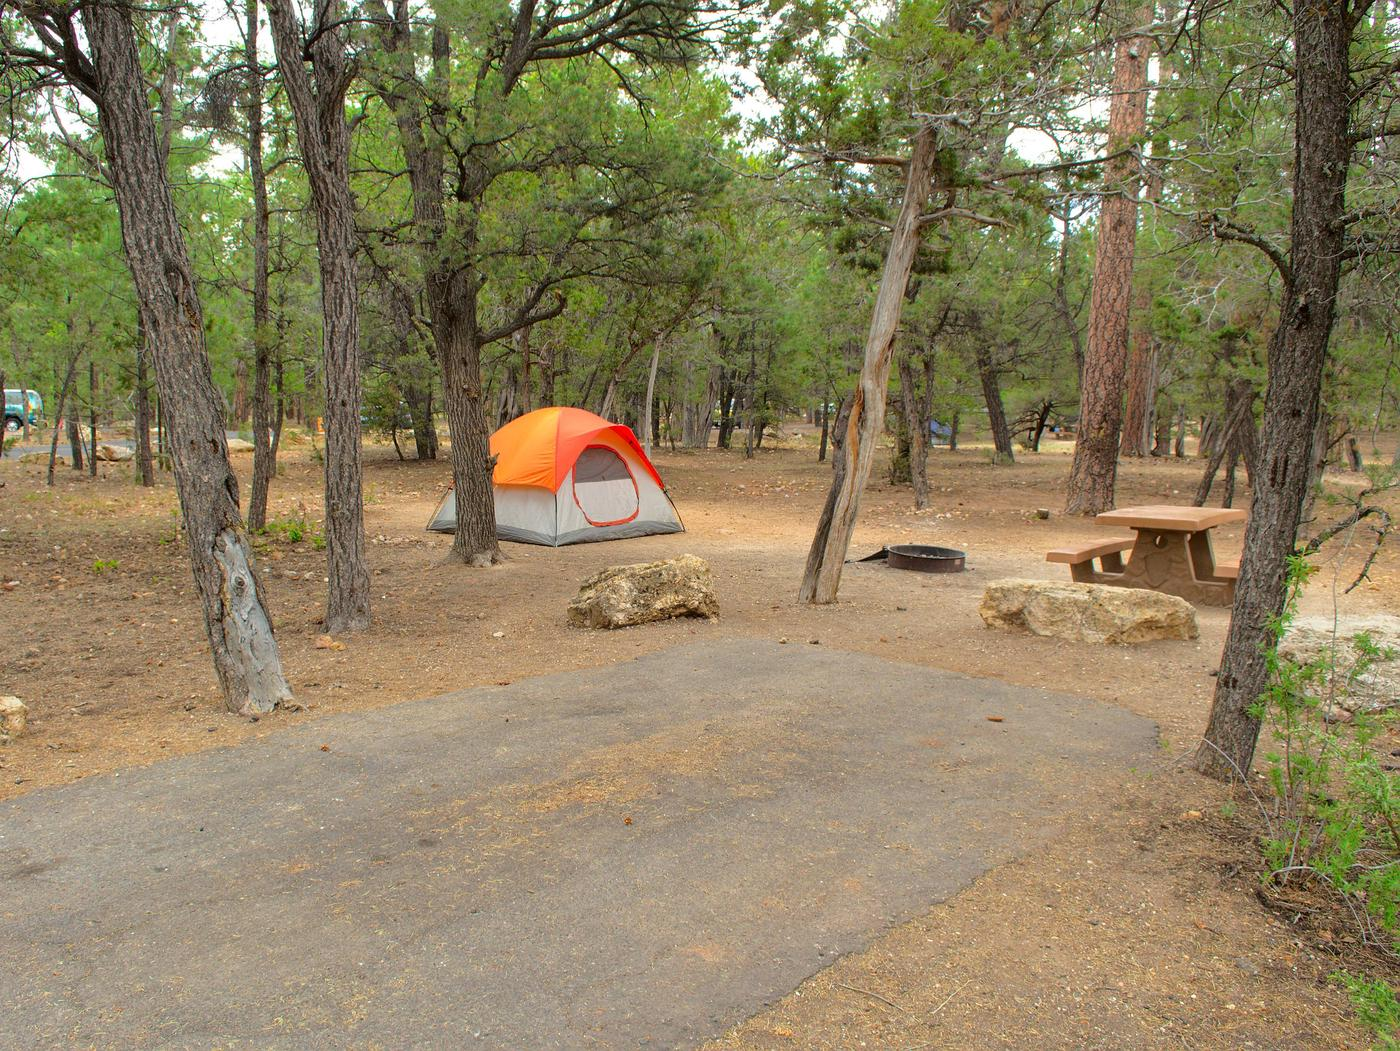 Picnic table, fire pit, tent,  and parking spot, Mather CampgroundThe picnic table, fire pit, tent, and parking spot for Aspen 41, Mather Campground